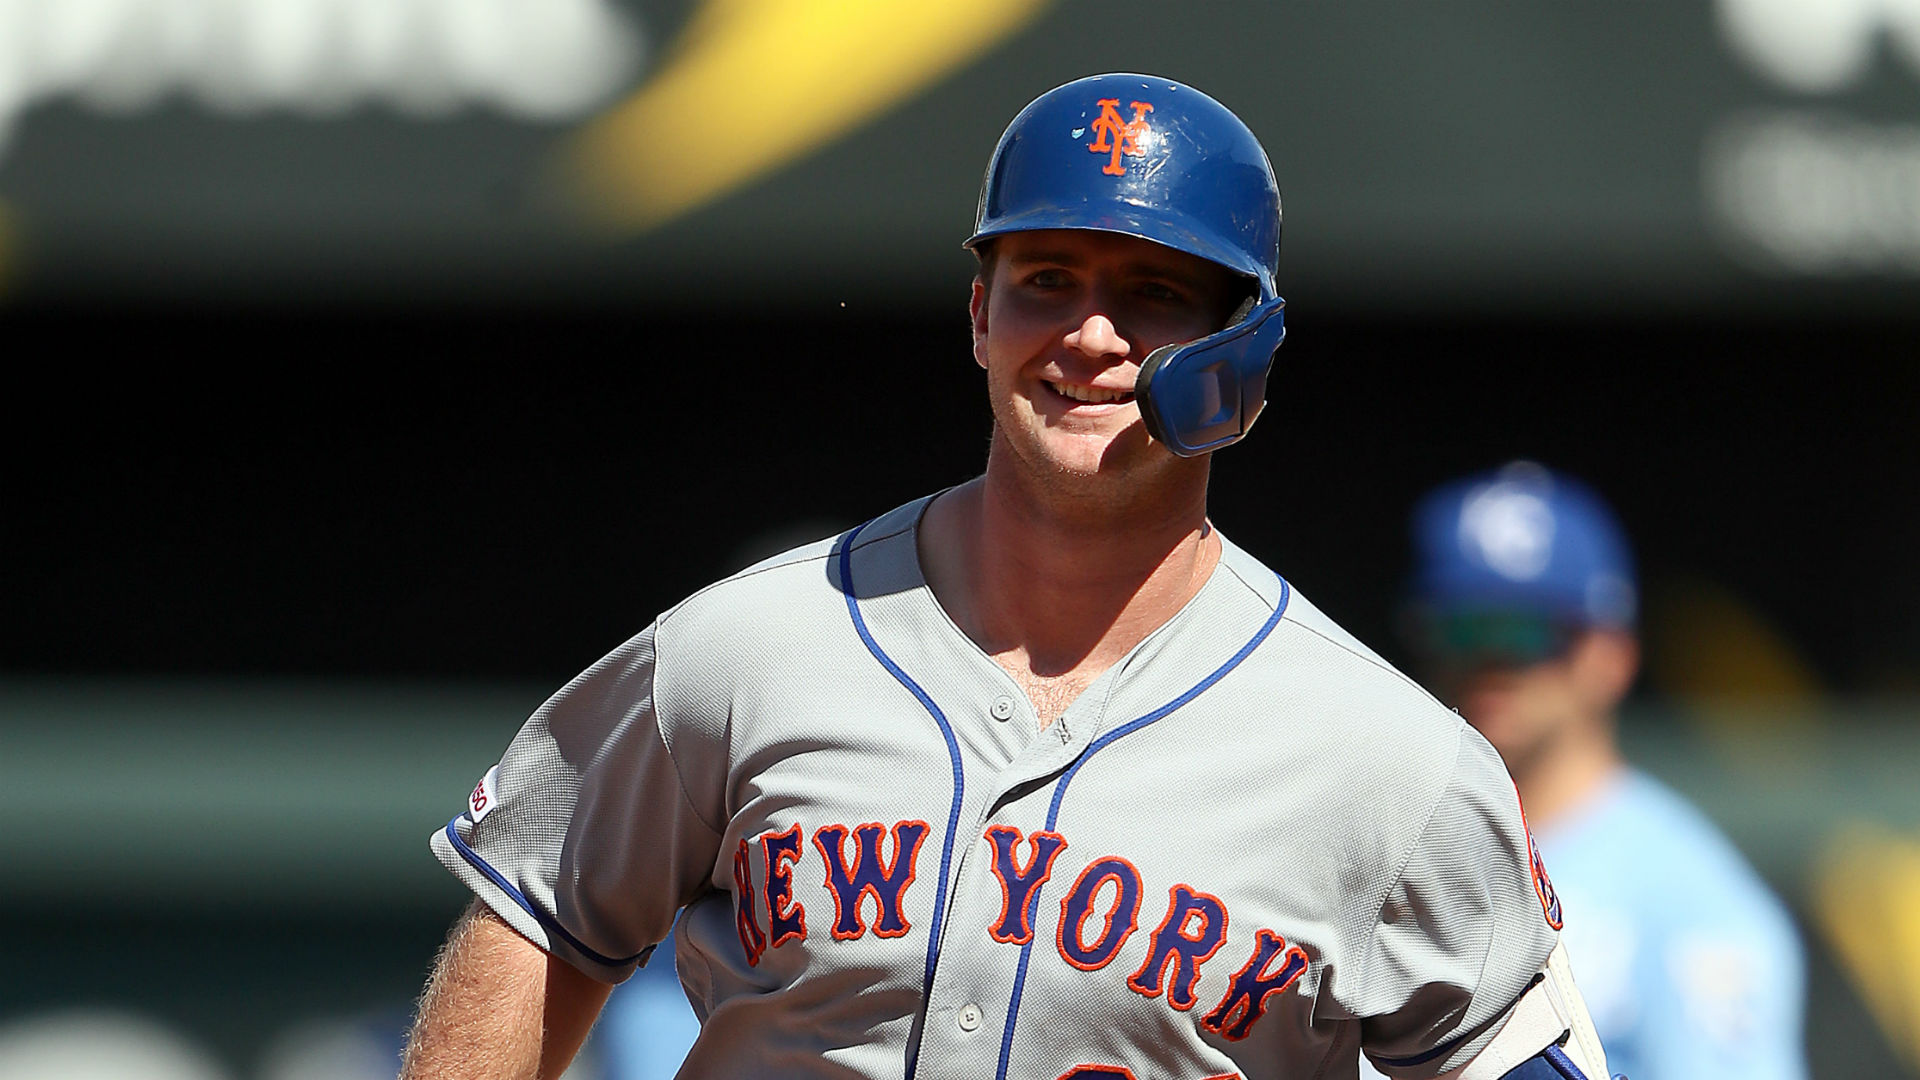 Mets' Pete Alonso breaks National League rookie home run record